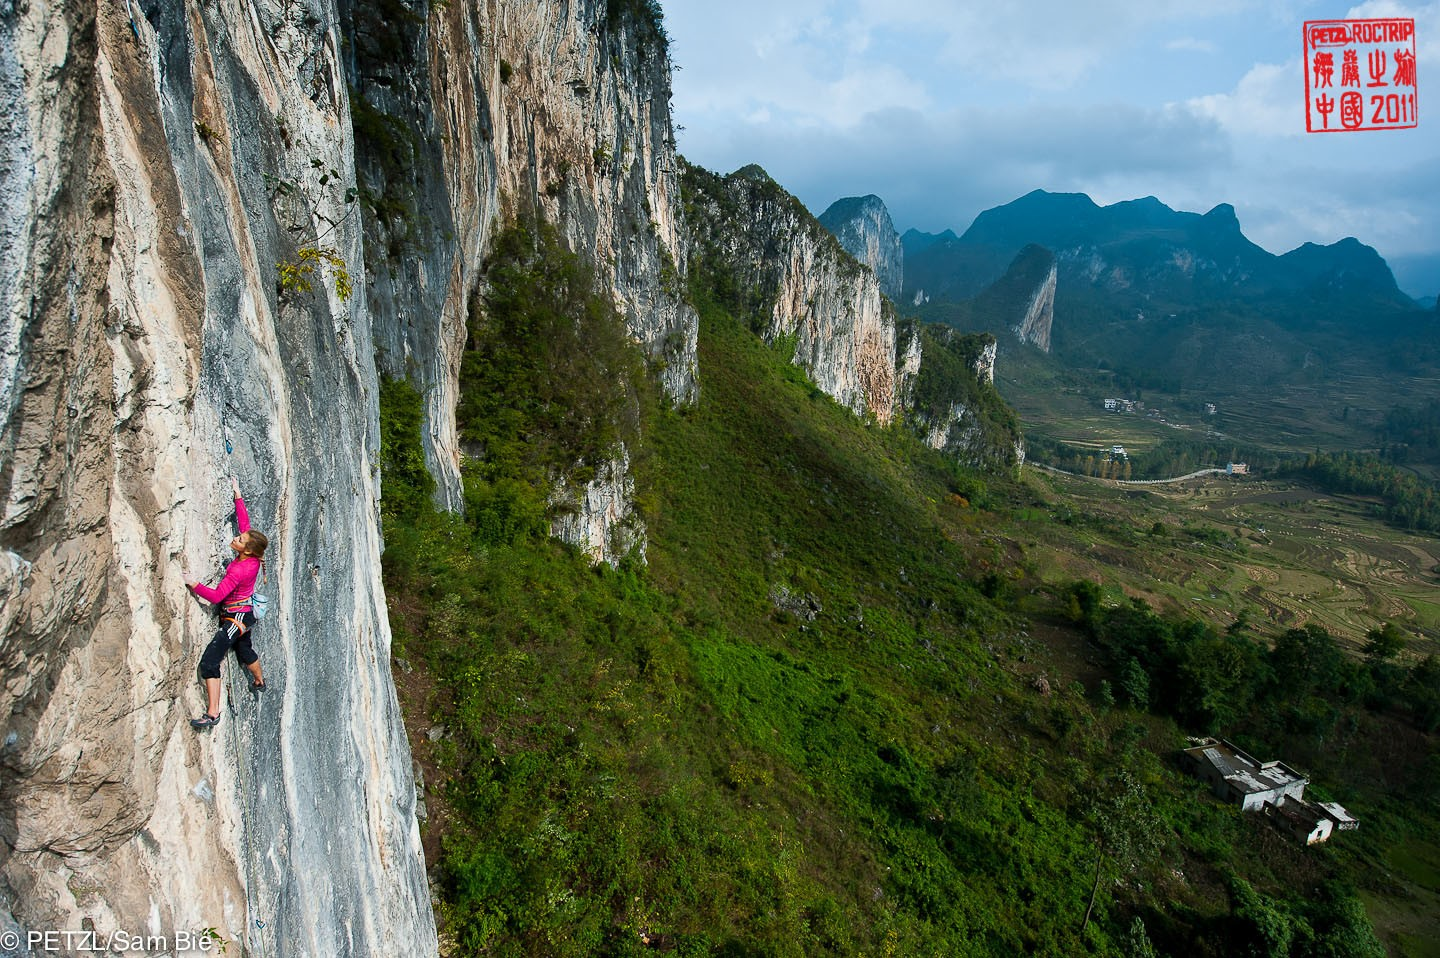 Sasha DiGiulian climbing Gétu Hé - Petzl RocTrip China 2011 ©Sam Bié